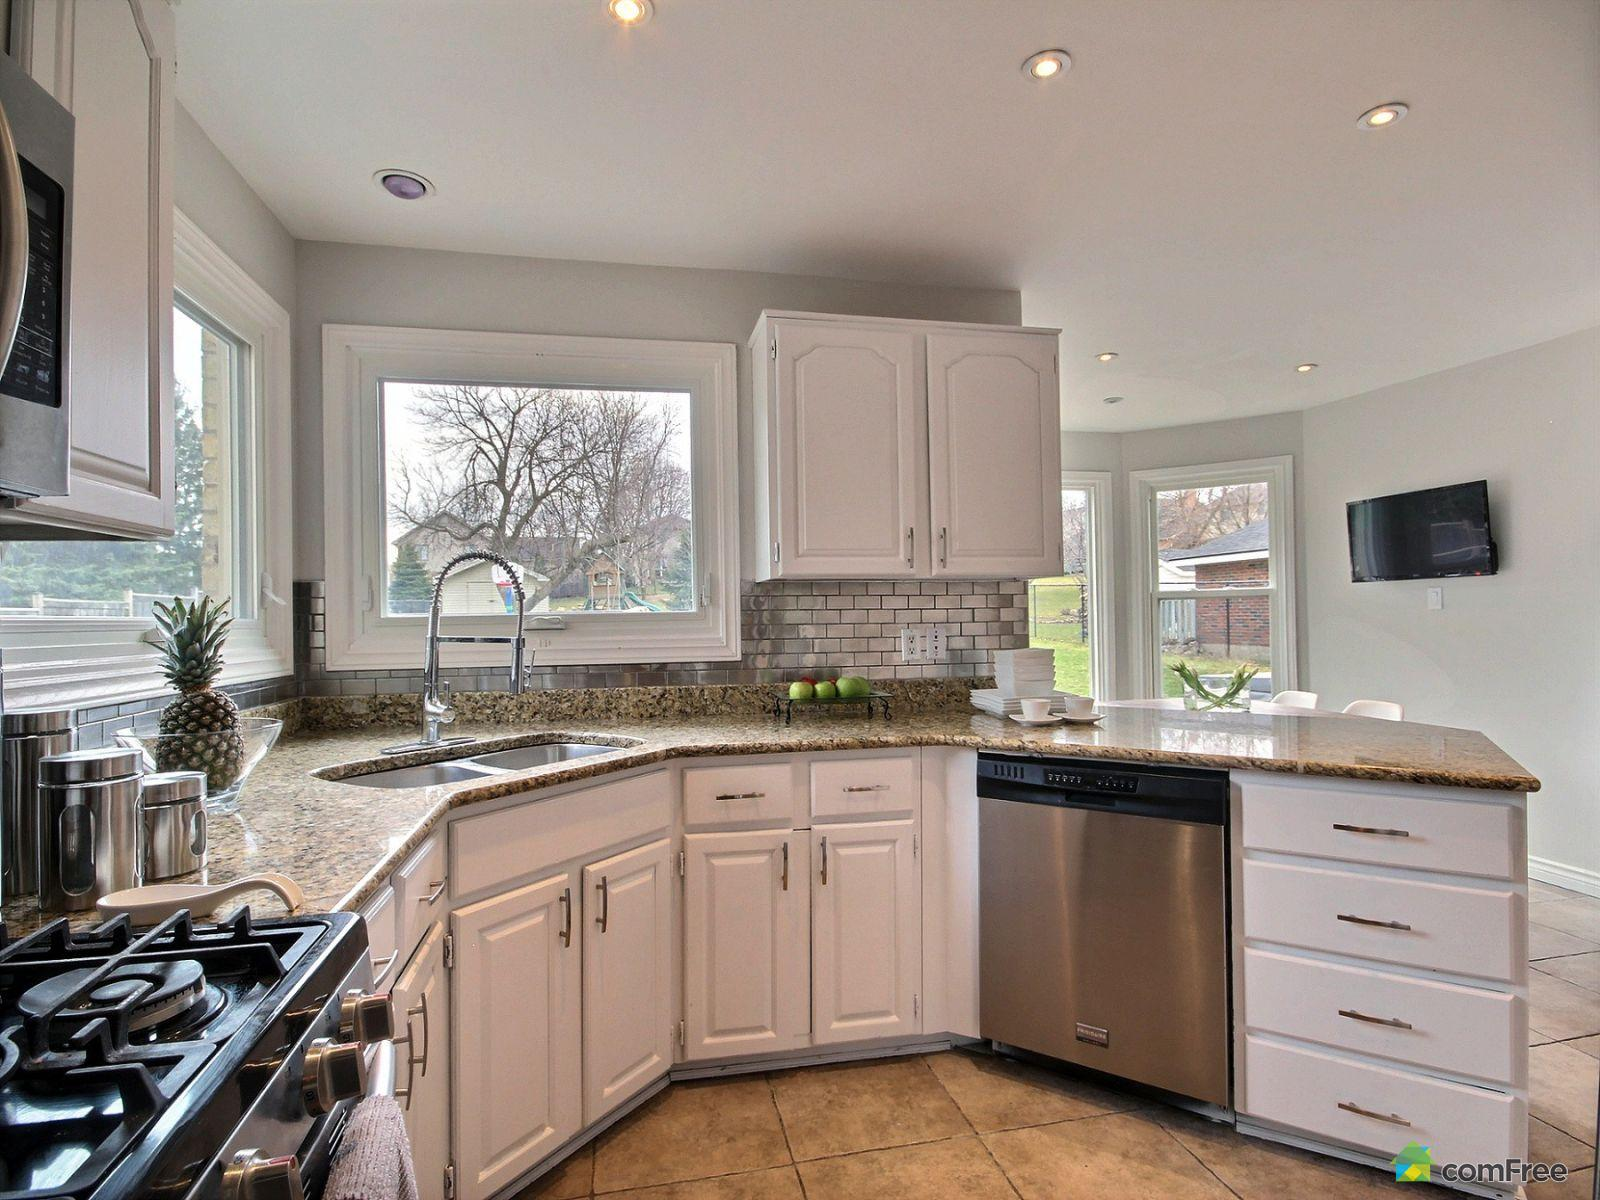 Kitchen Home For Sale London Ontario 1600 8700246 Greentech